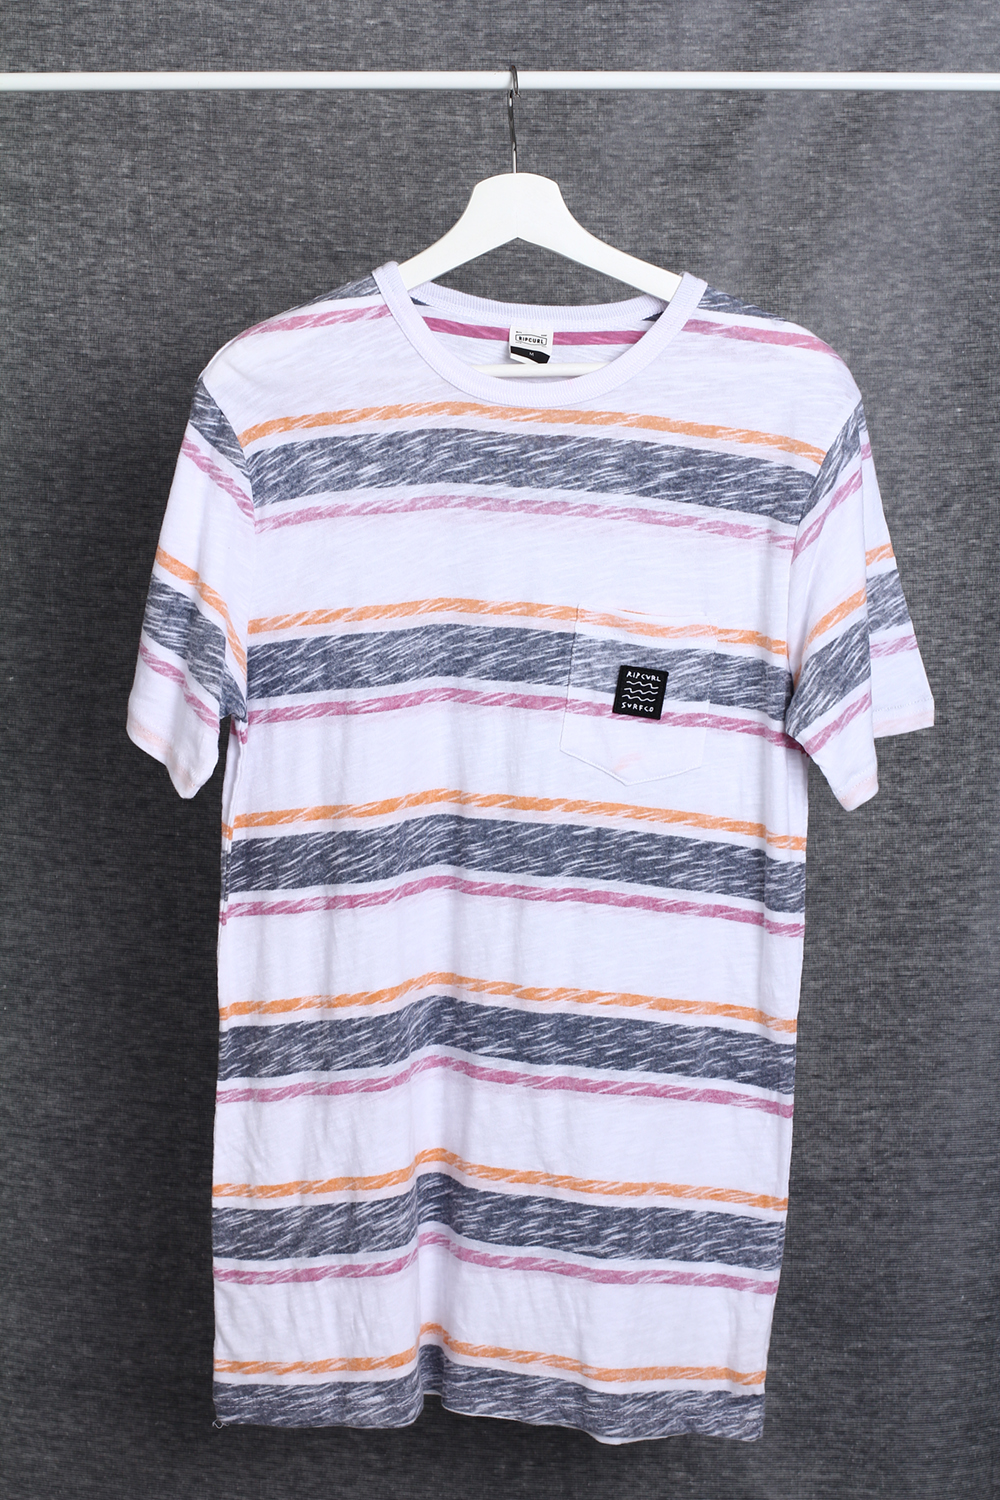 TO RIPCURL 601 uk S,M,XL,XXL